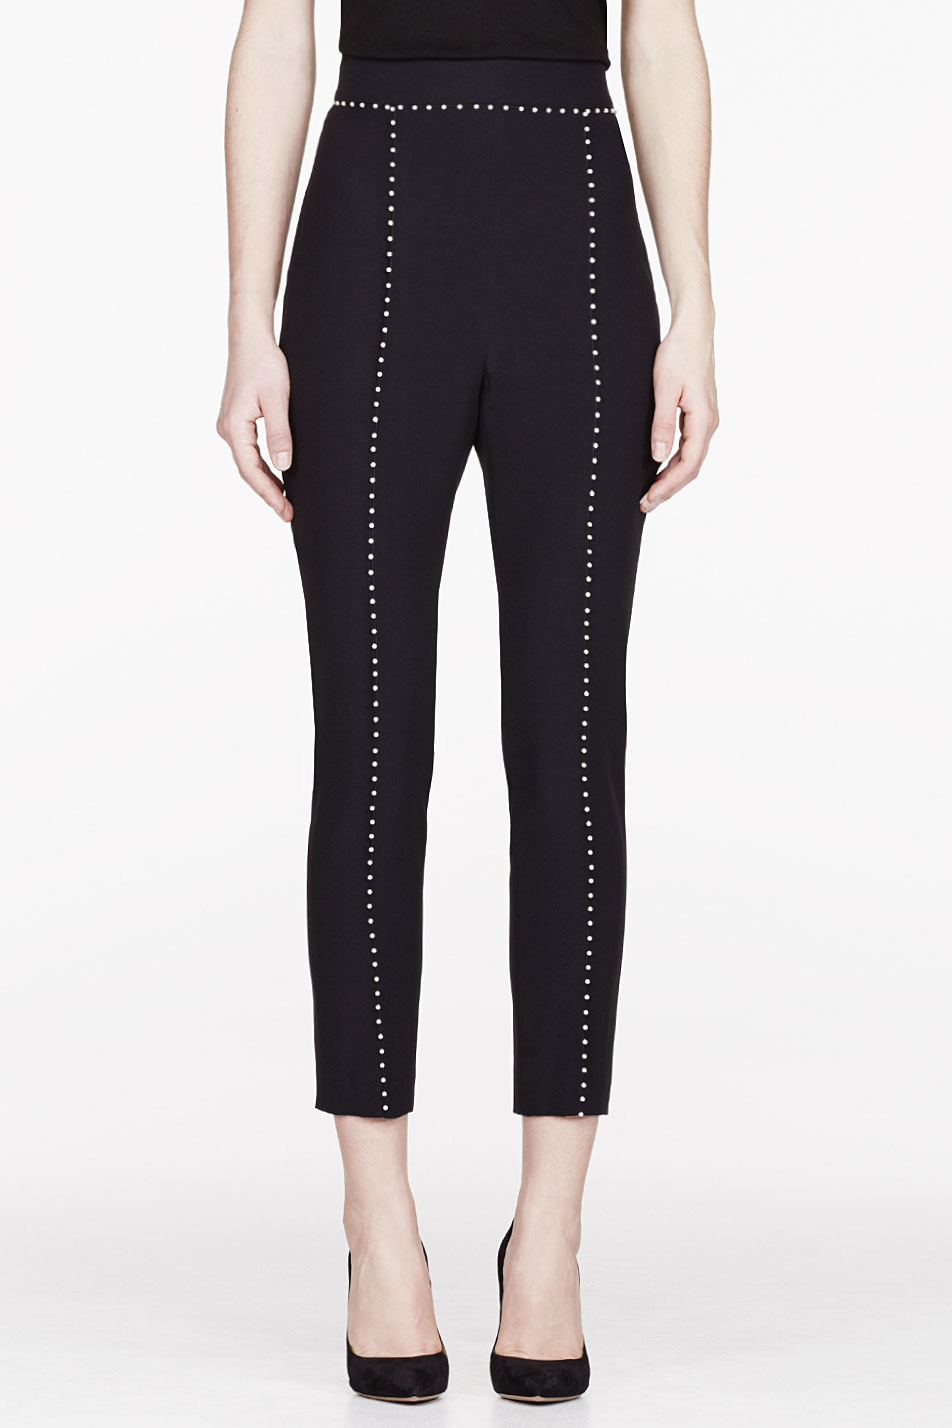 Alexander mcqueen black crepe and pearl leaf trousers